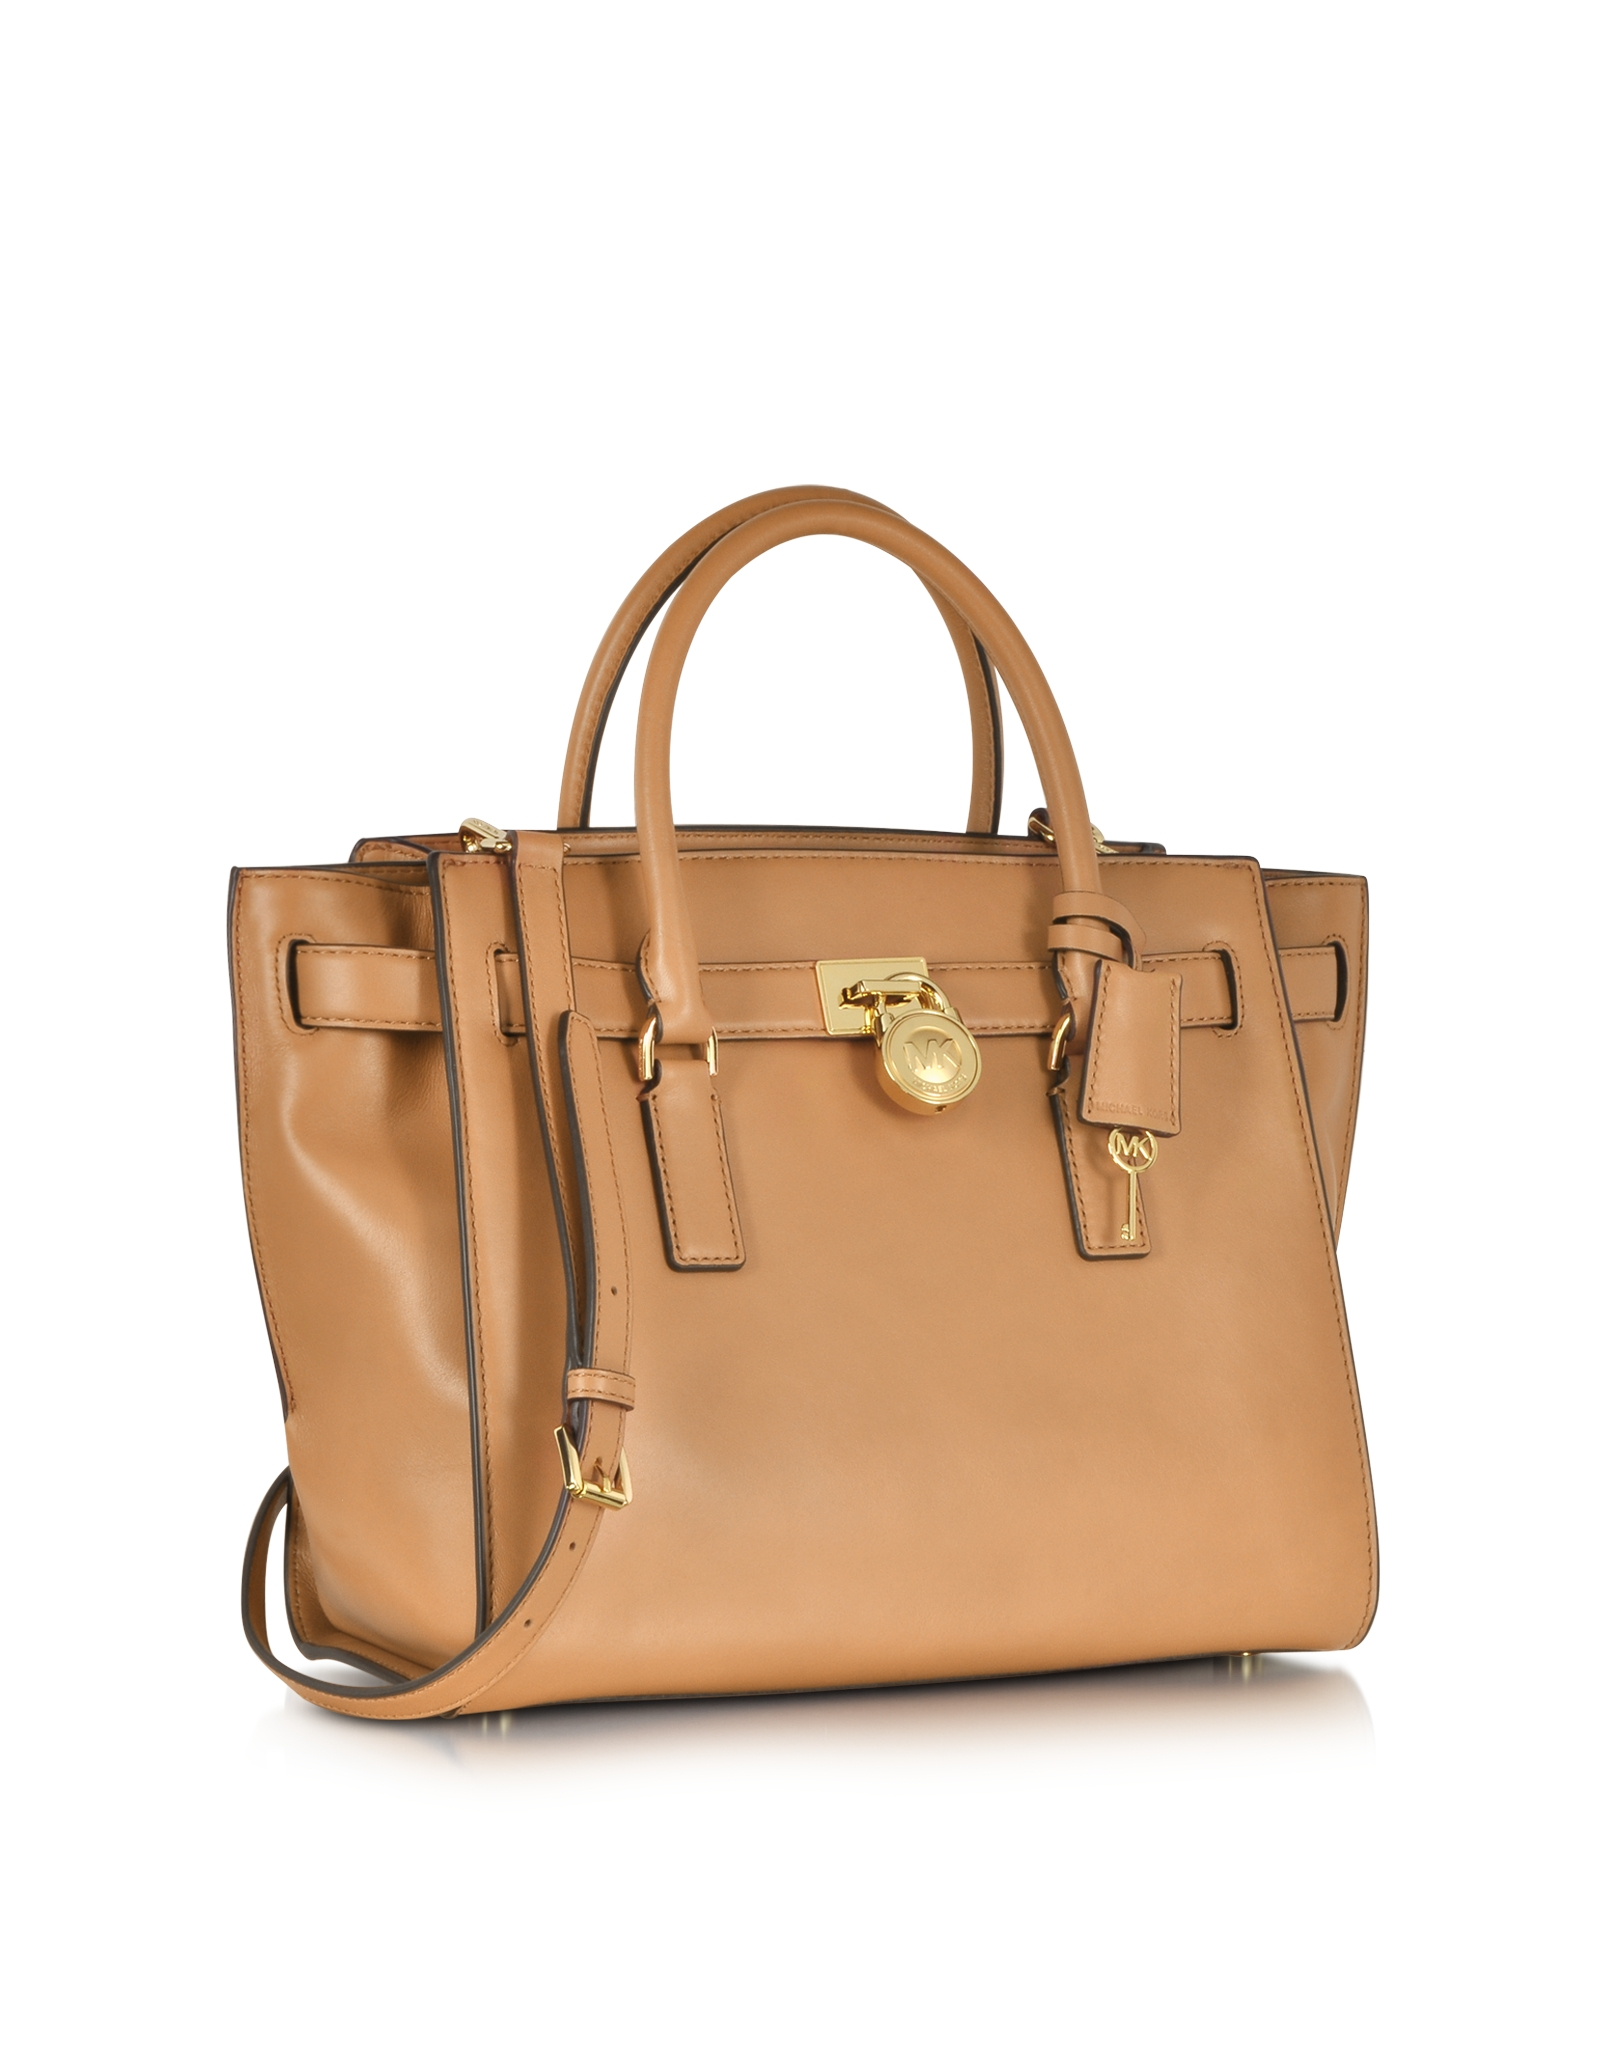 add31e7a73c9 Michael Kors Hamilton Traveler Large Leather Satchel in Natural - Lyst